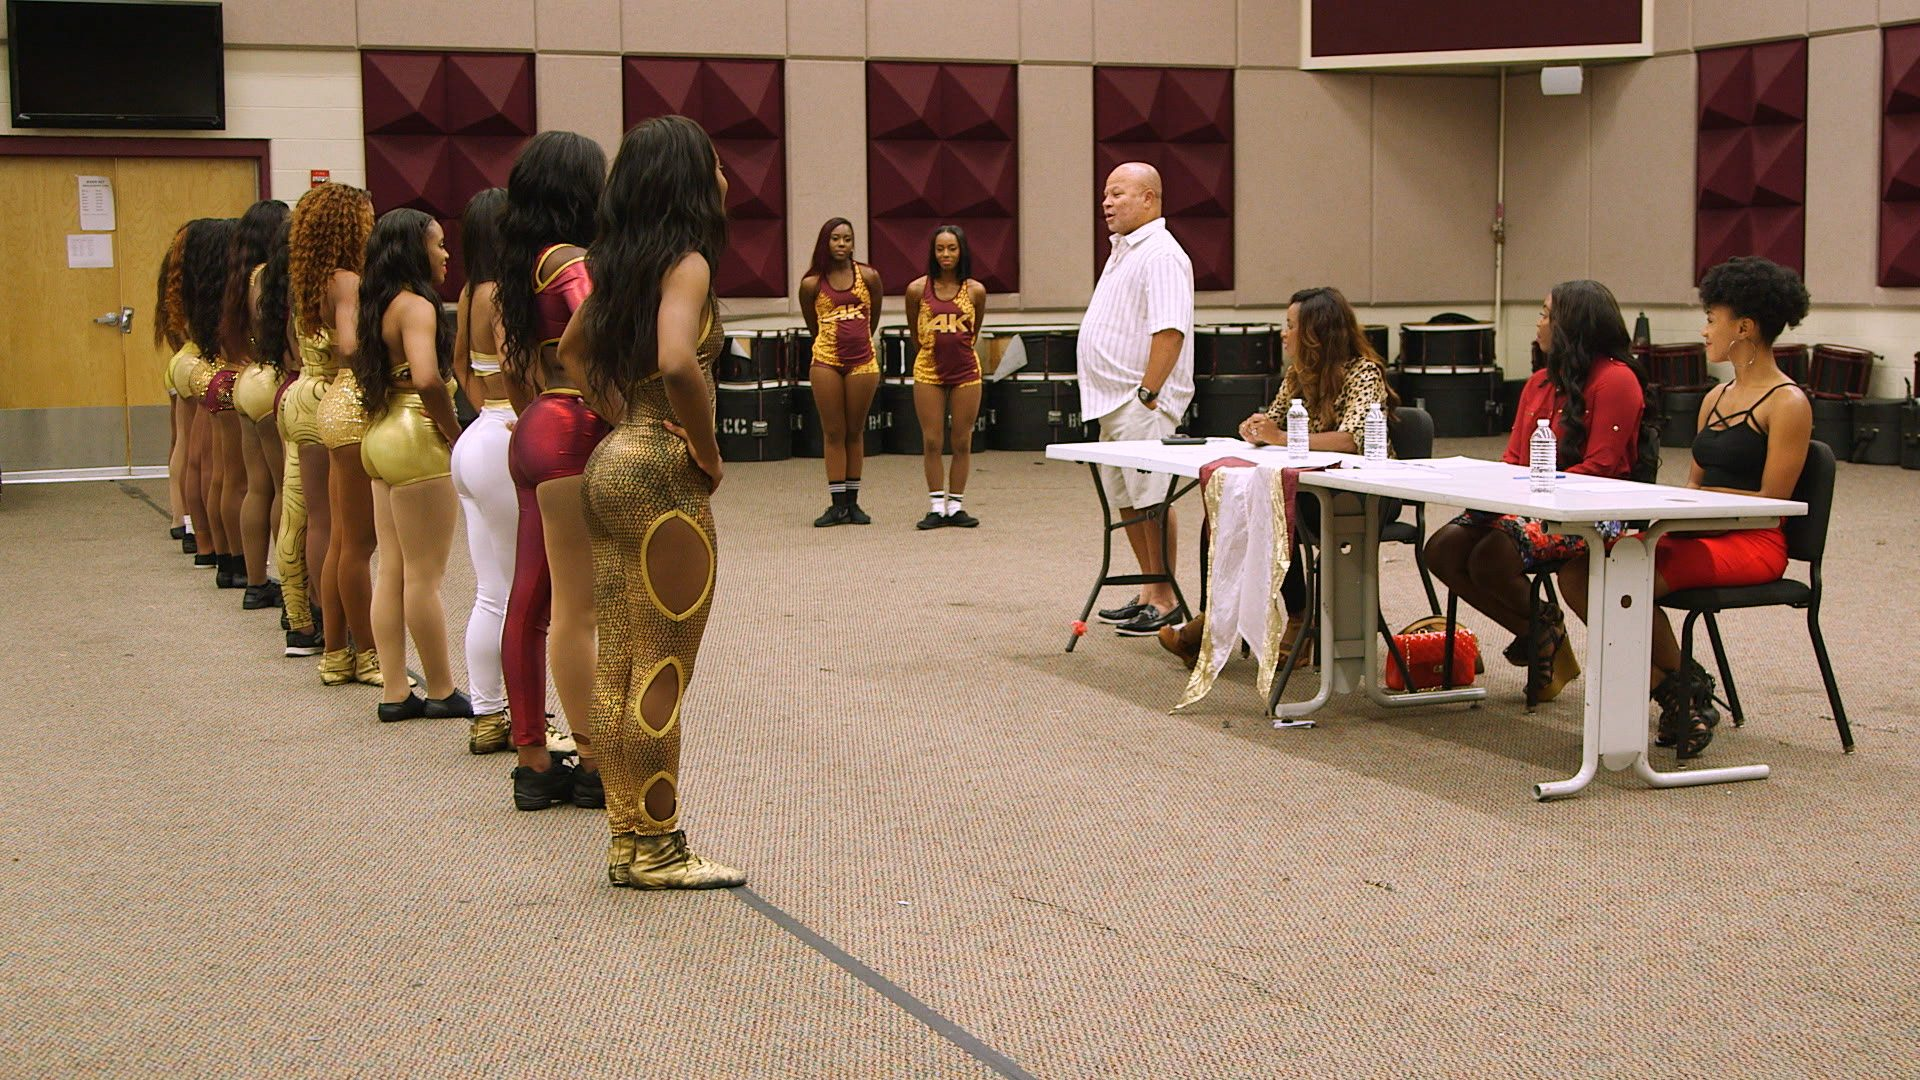 14K Dancers, Auditions, Bethune-Cookman University, BCU, Marching Wildcats, Marching Orders, Stage 13 Original, stage13network